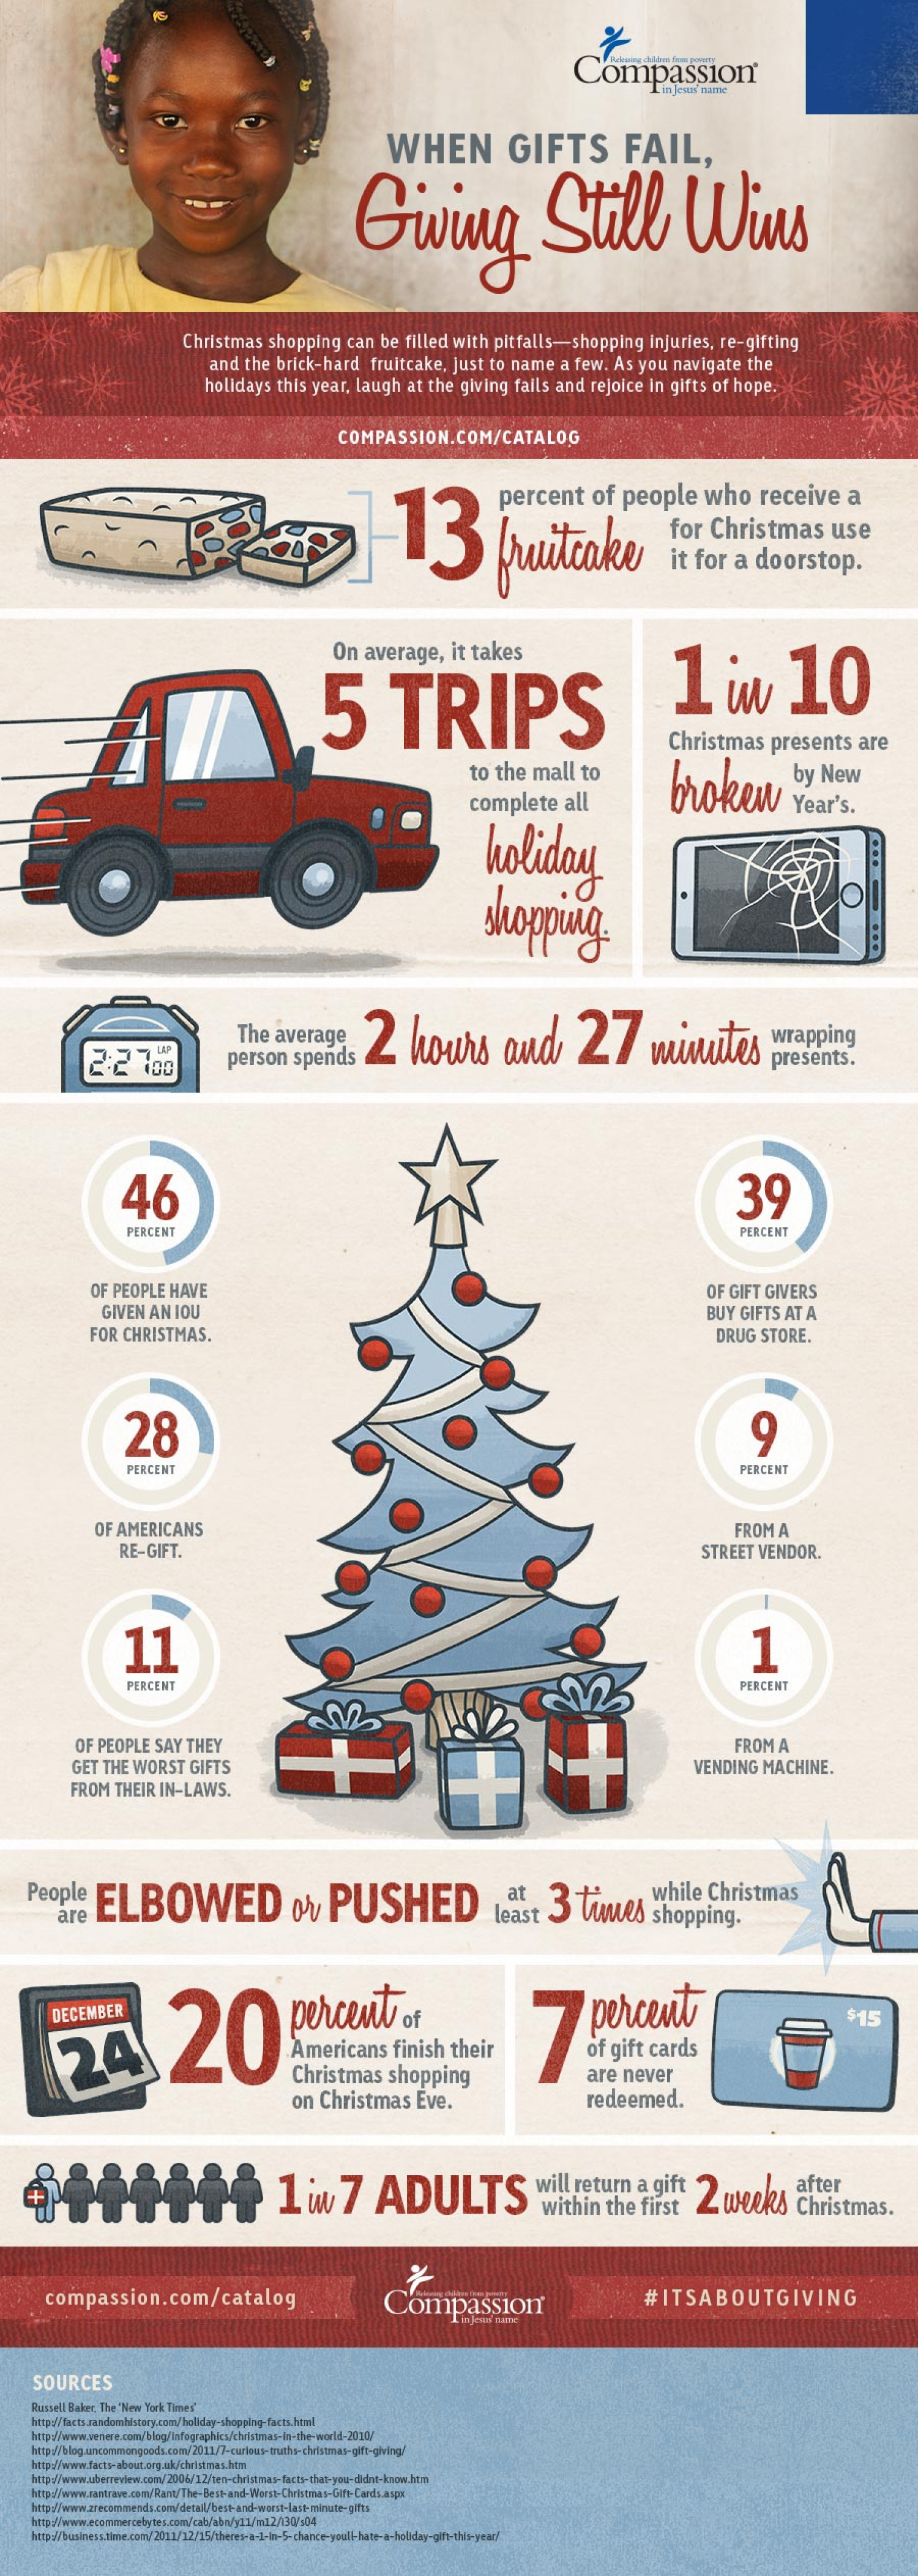 When Gifts Fail, Giving Still Wins Infographic